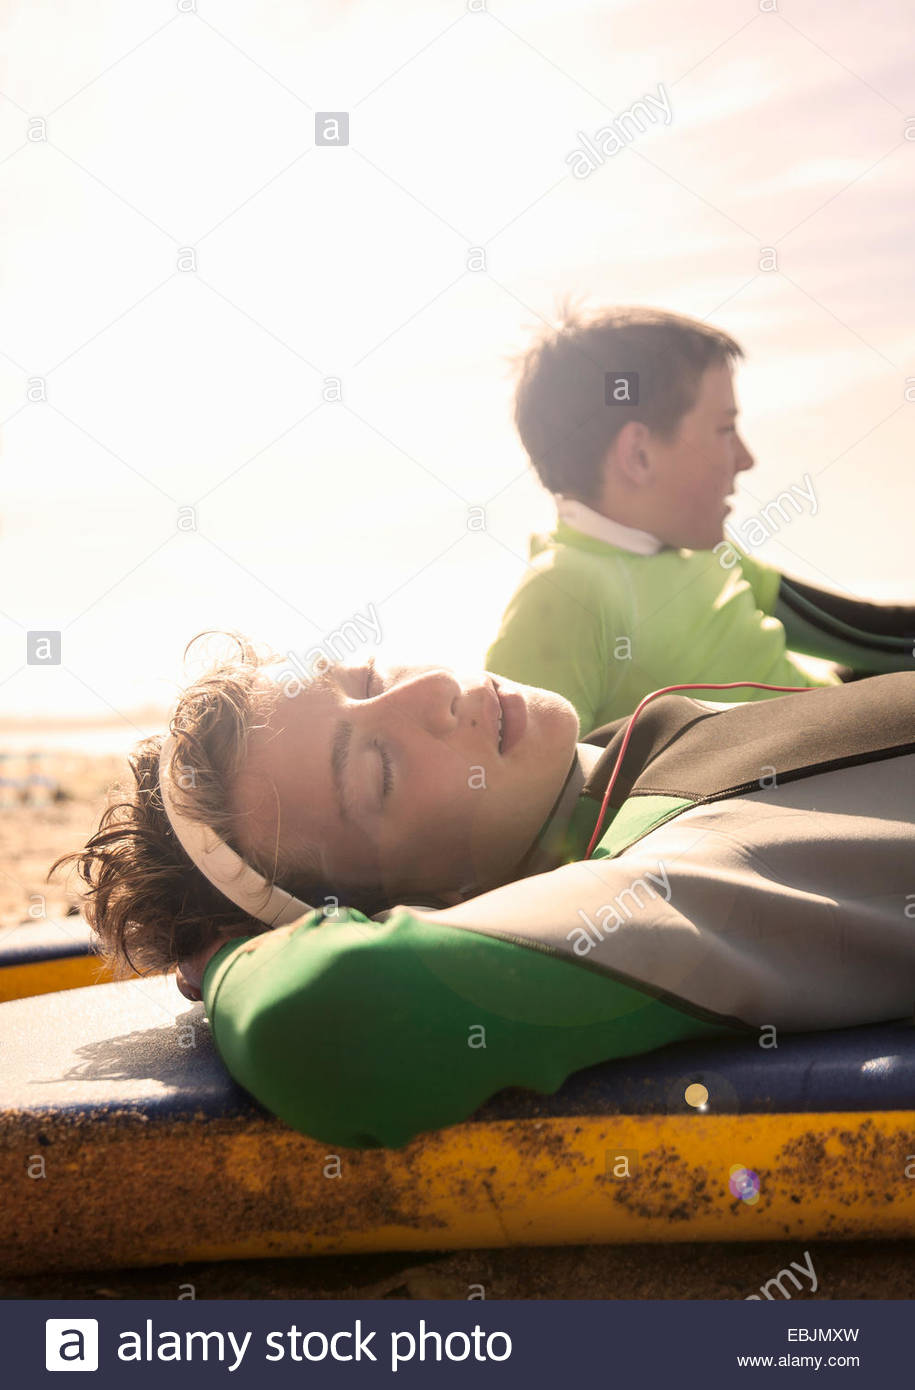 Teenage boy lying asleep on surfboard - Stock Image